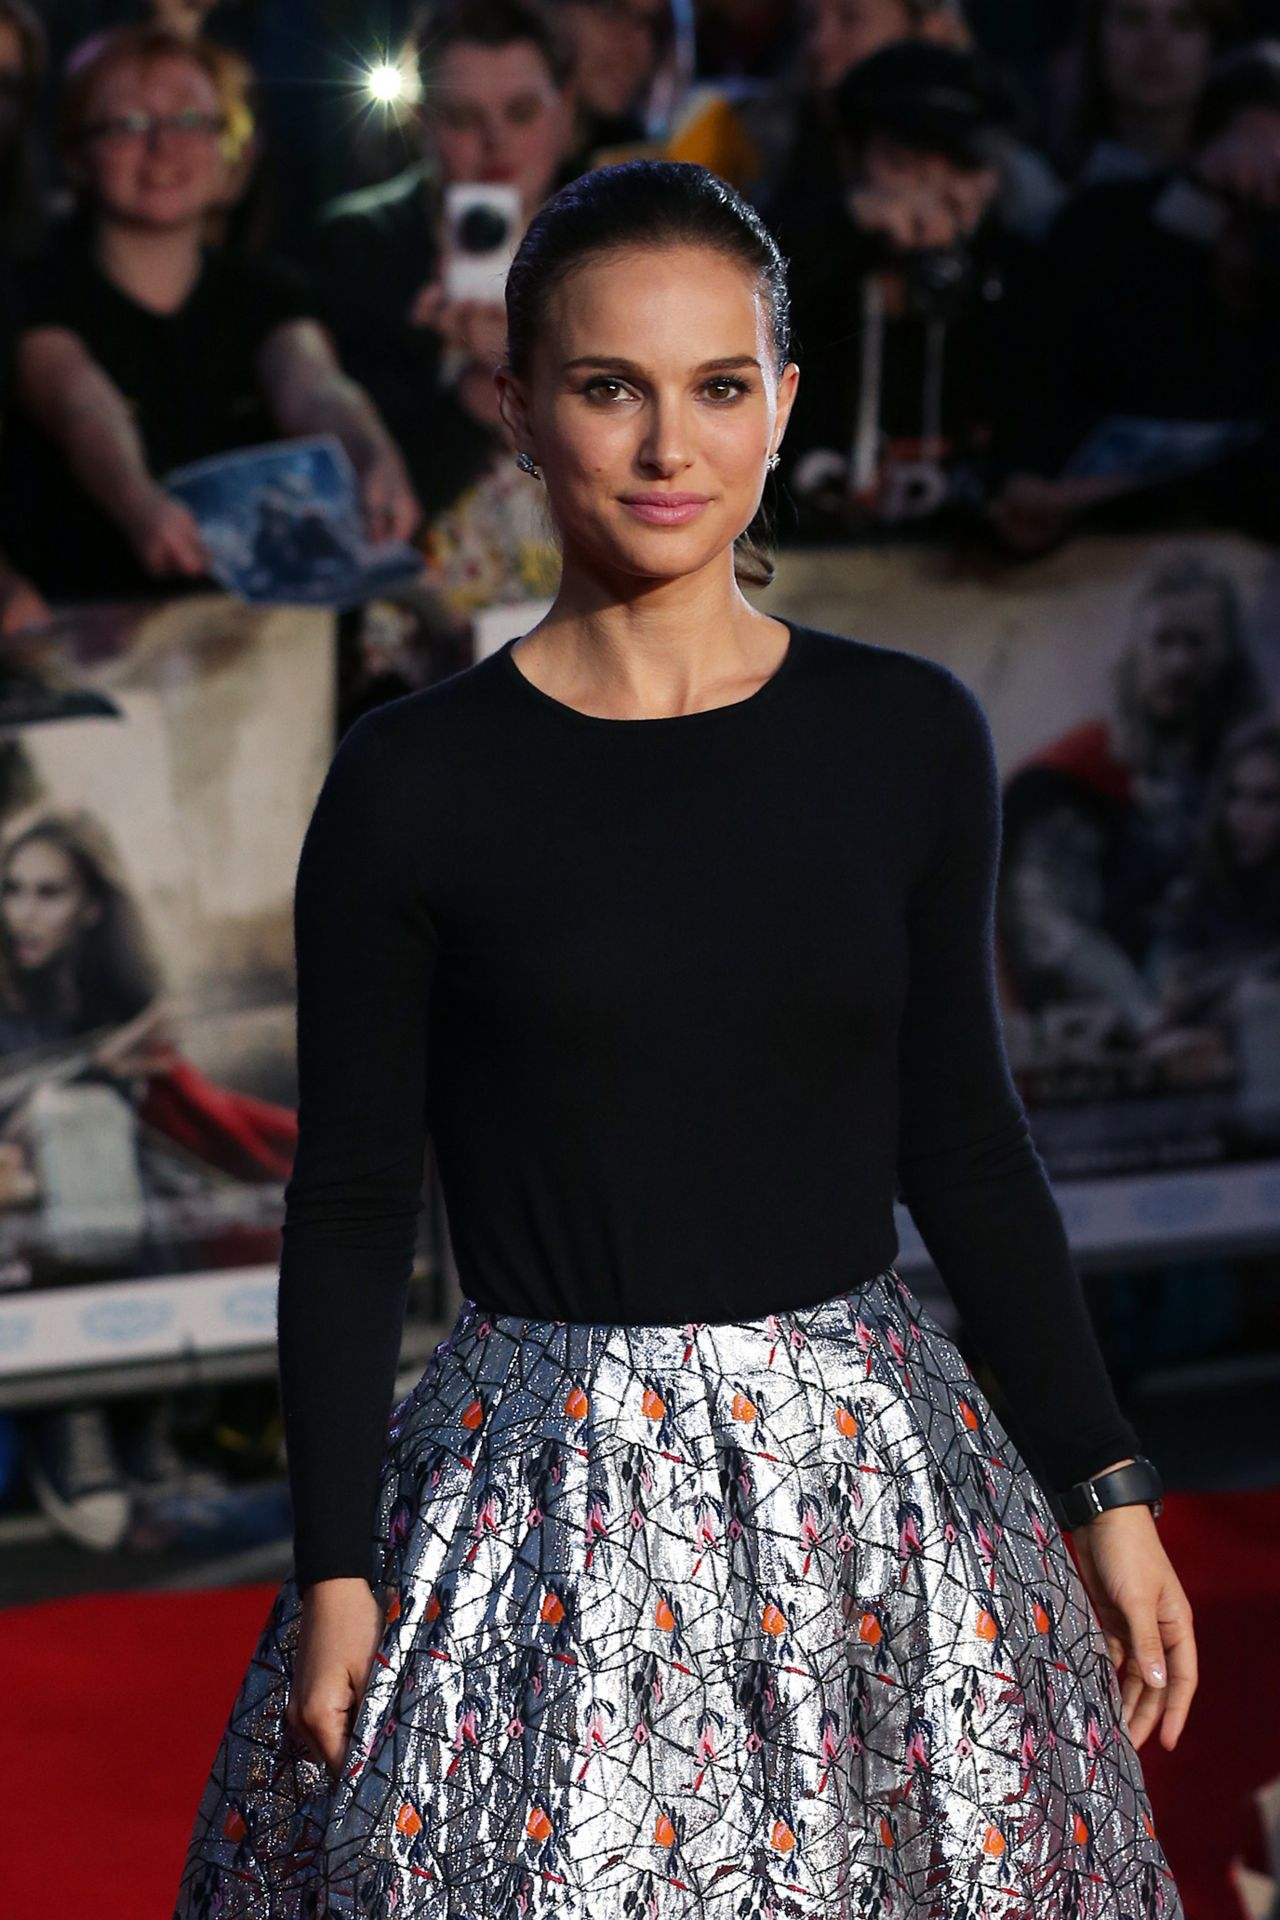 Natalie Portman - THOR: THE DARK WORLD Red Carpet in London